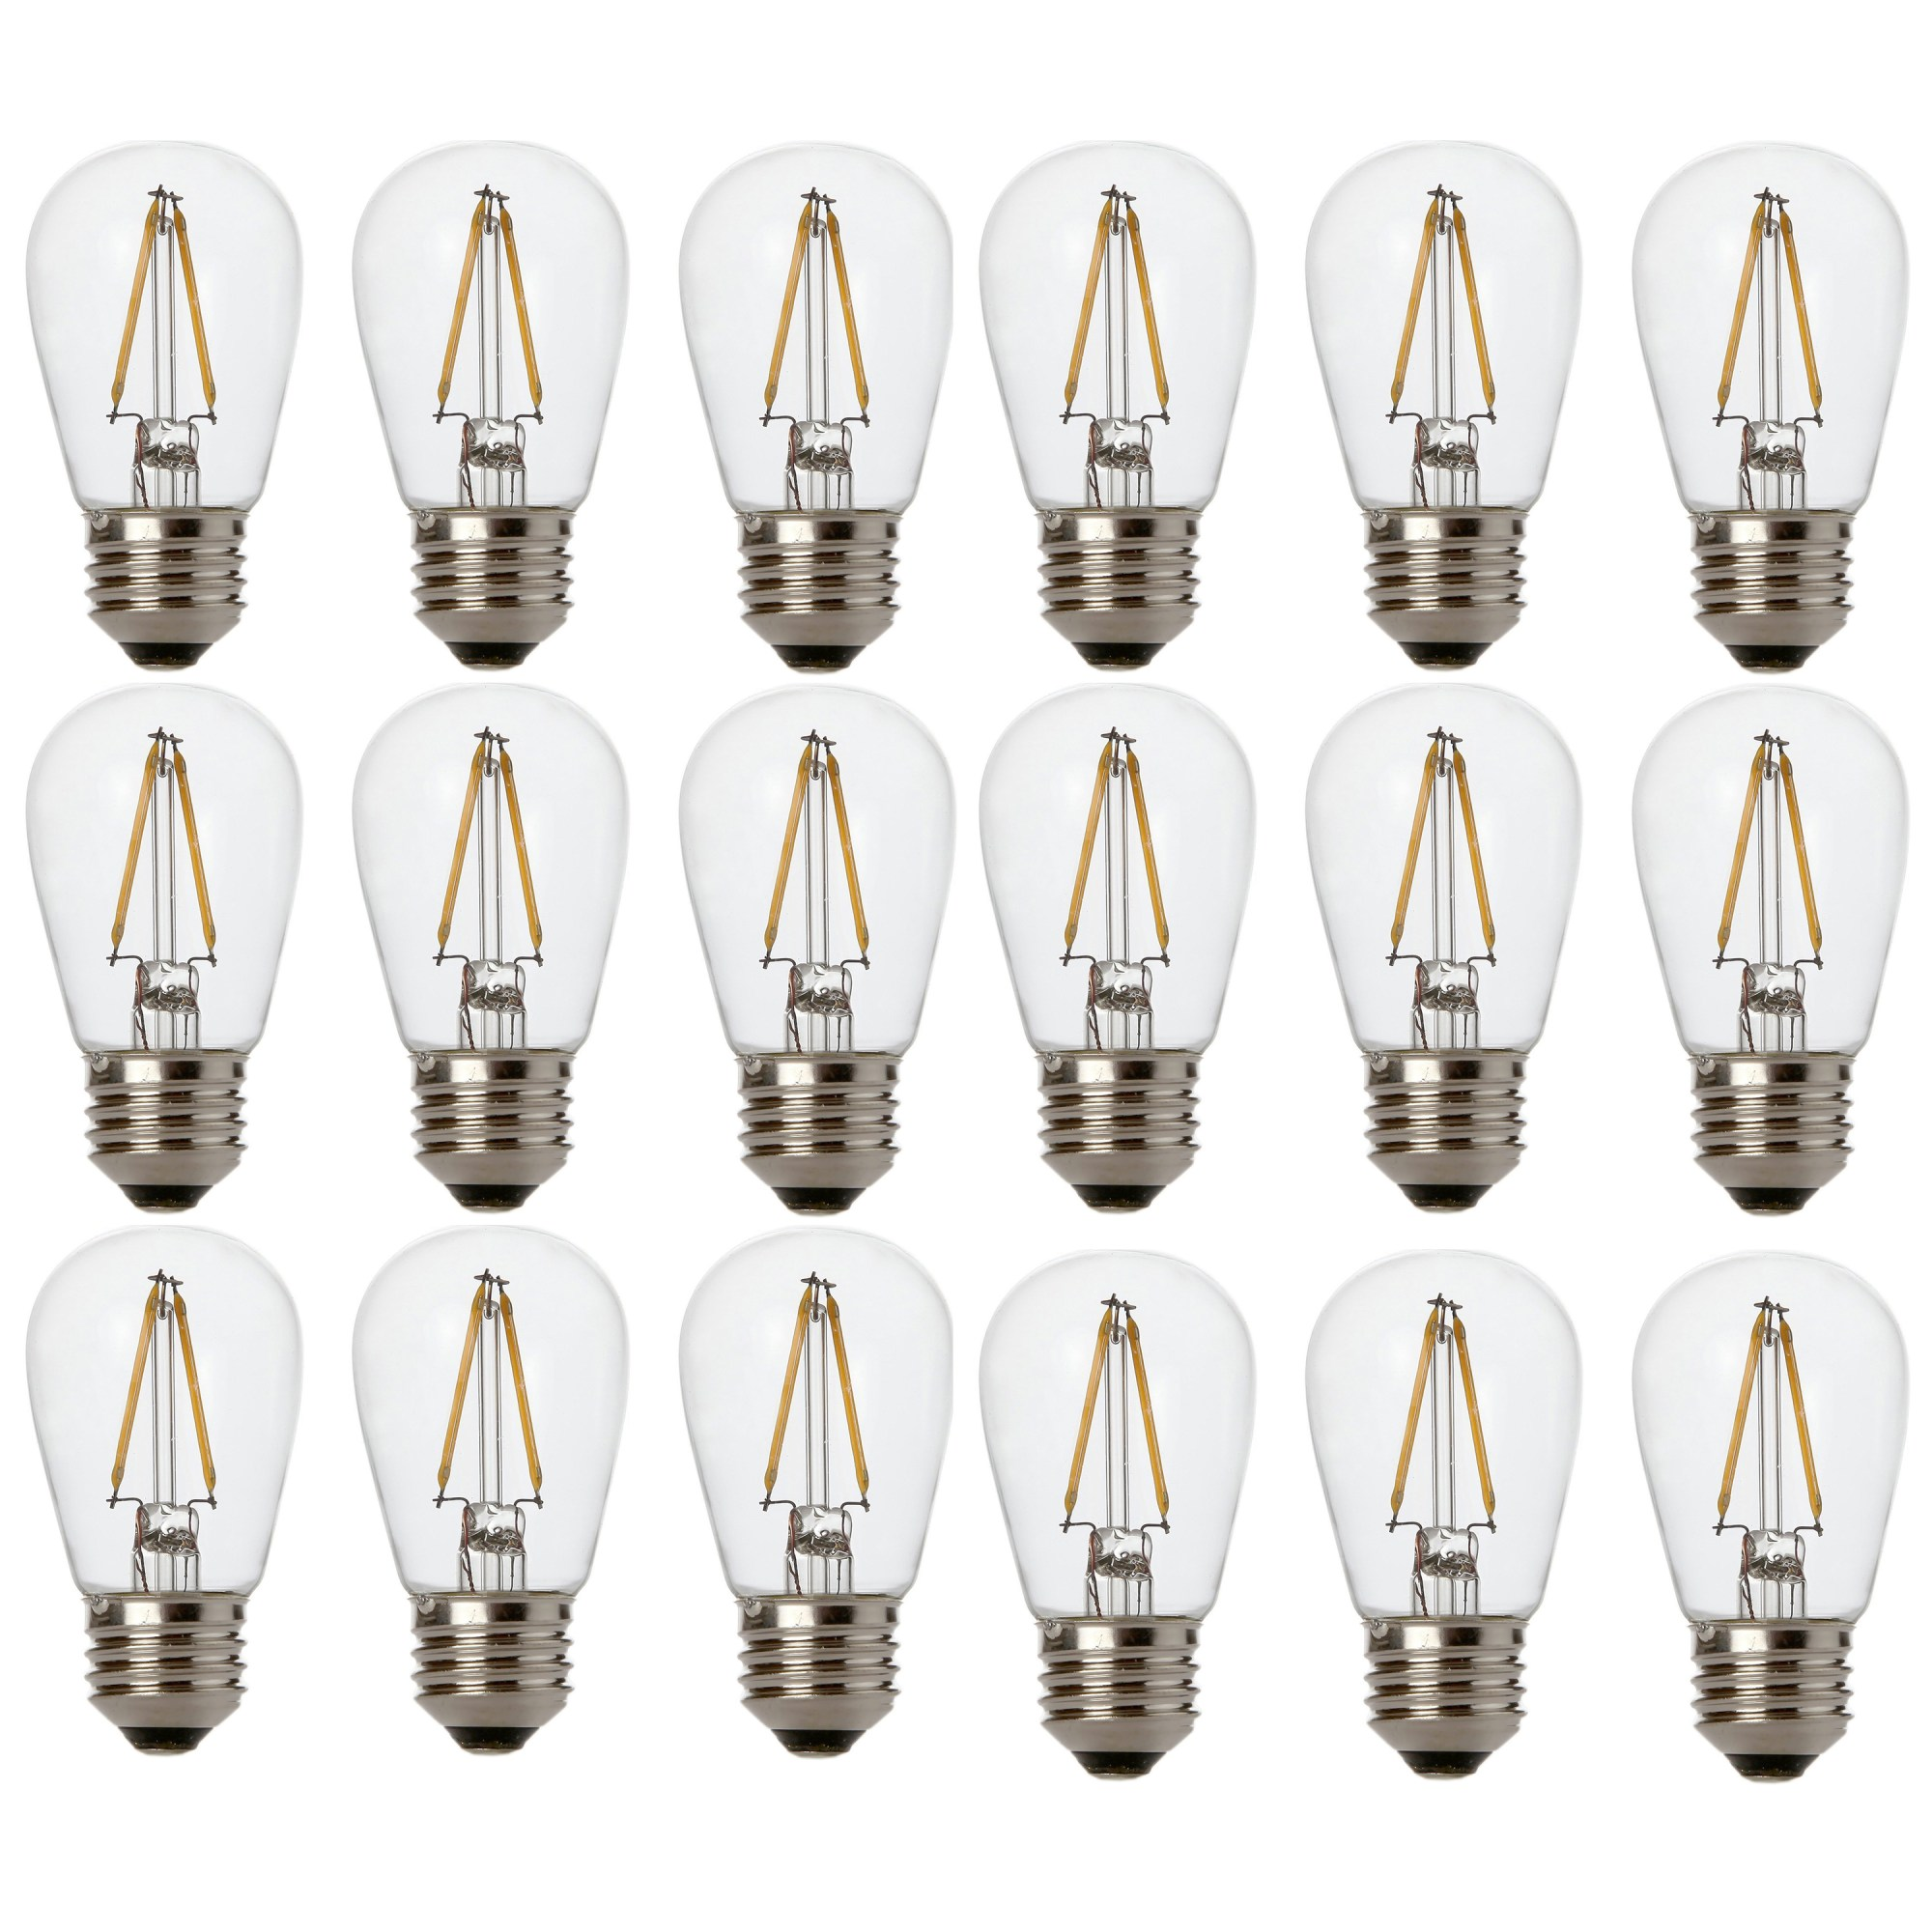 hight resolution of newhouse lighting outdoor weatherproof 2w s14 led replacement string light bulbs standard base 18